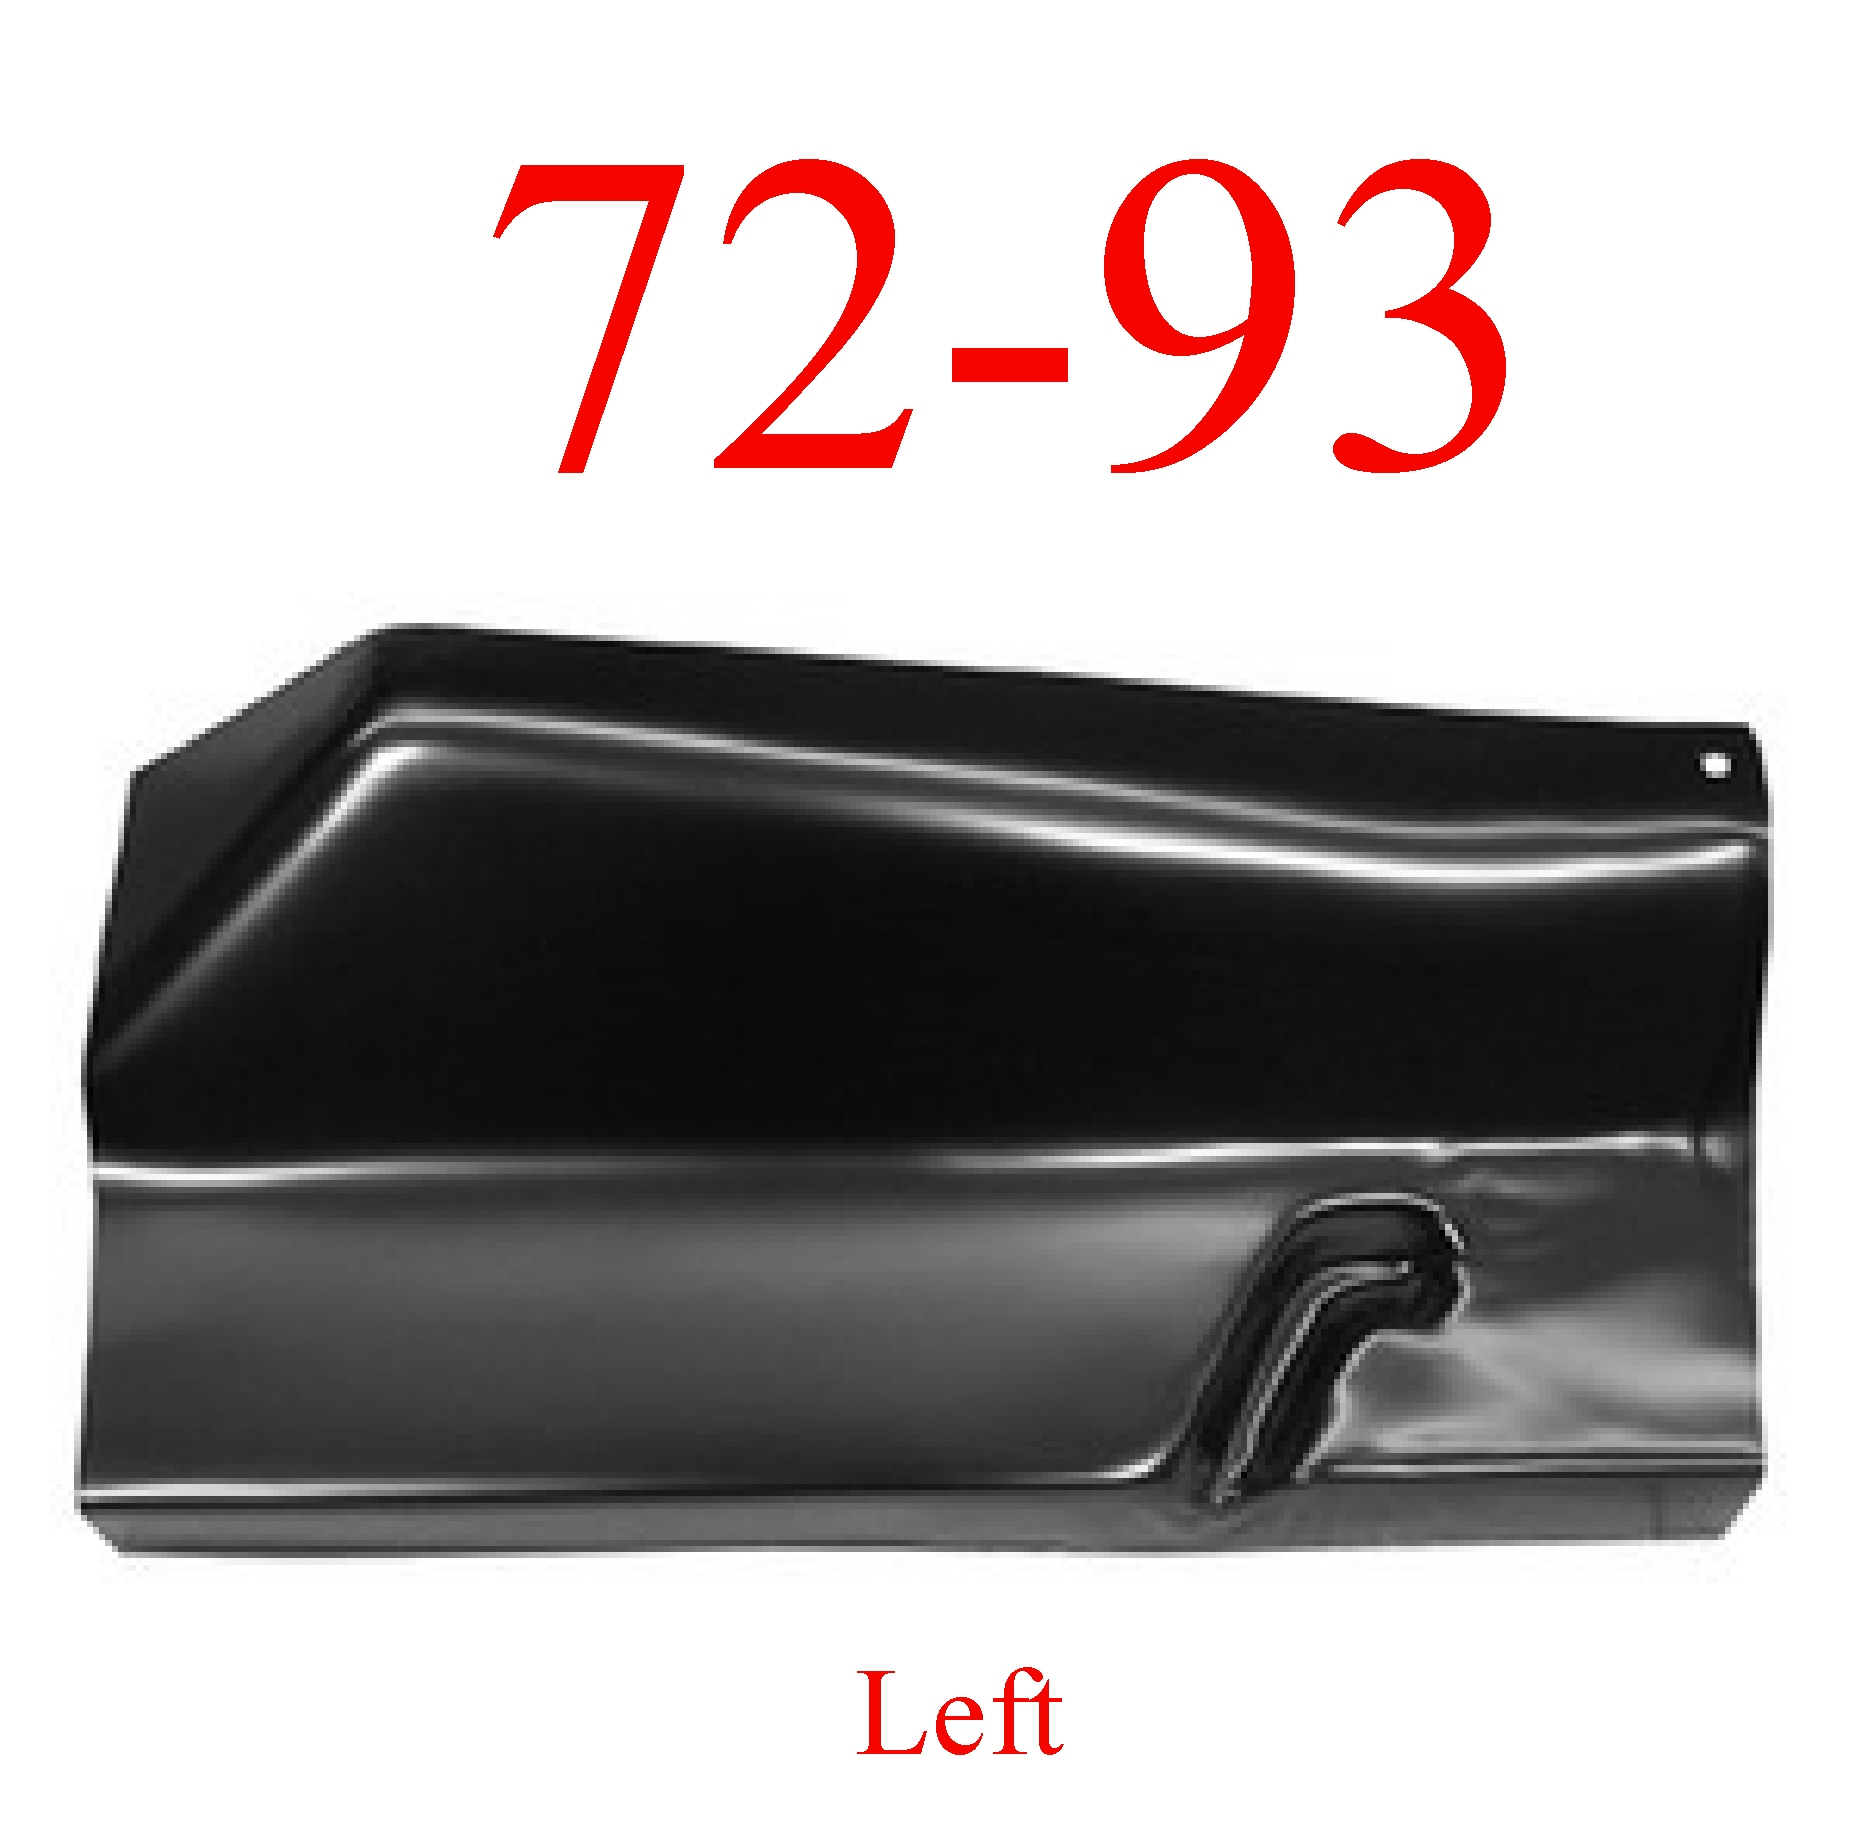 72-93 Dodge Left Outer Floor Panel